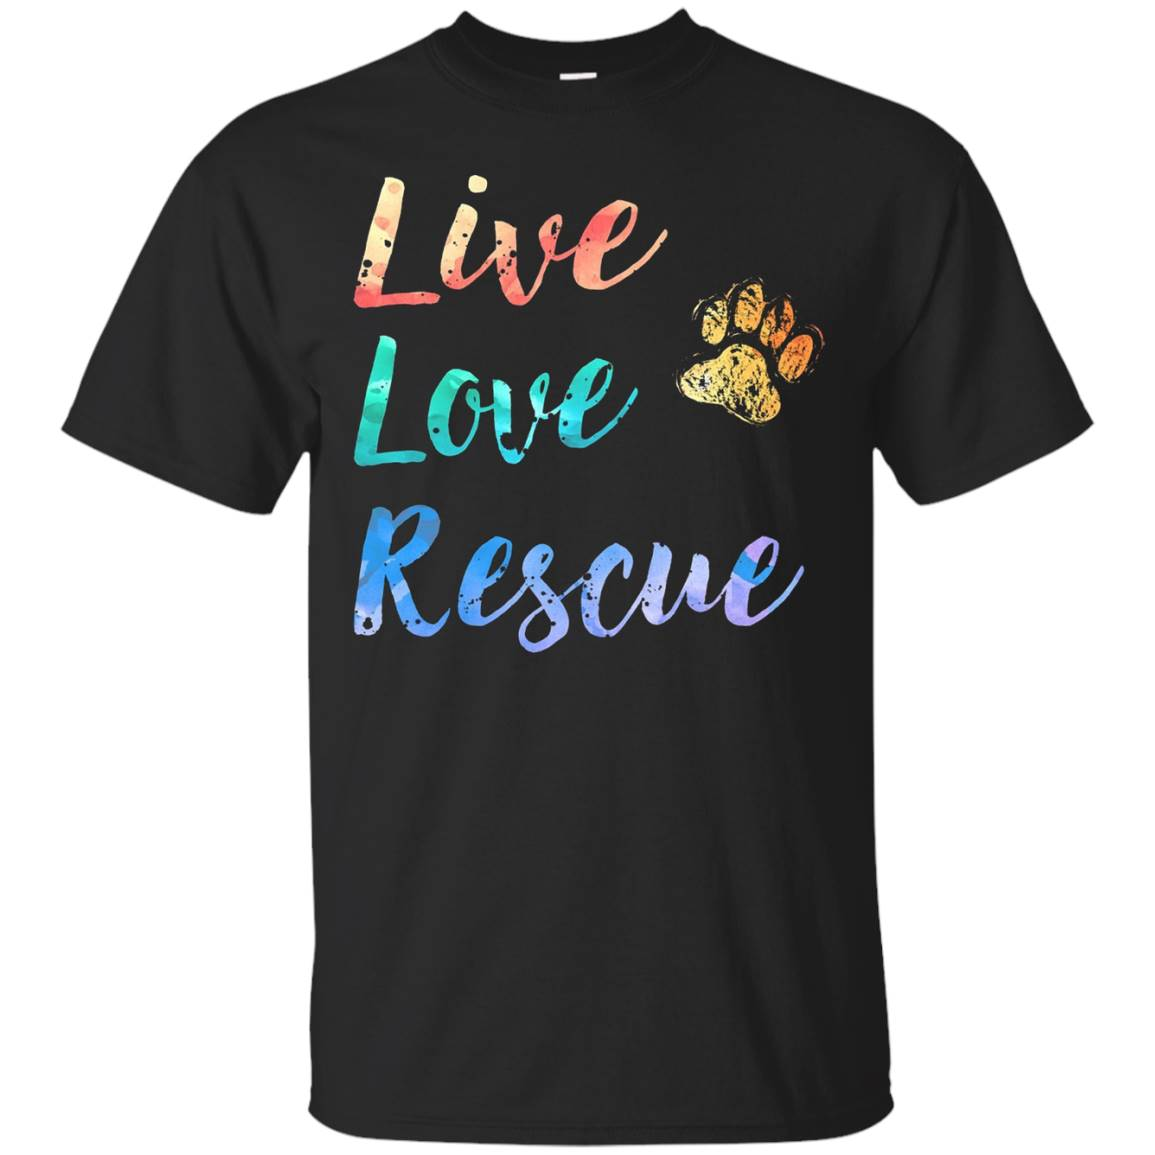 LIVE LOVE RESCUE is an Adopt A Pet Dog Lover T shirt – T-Shirt